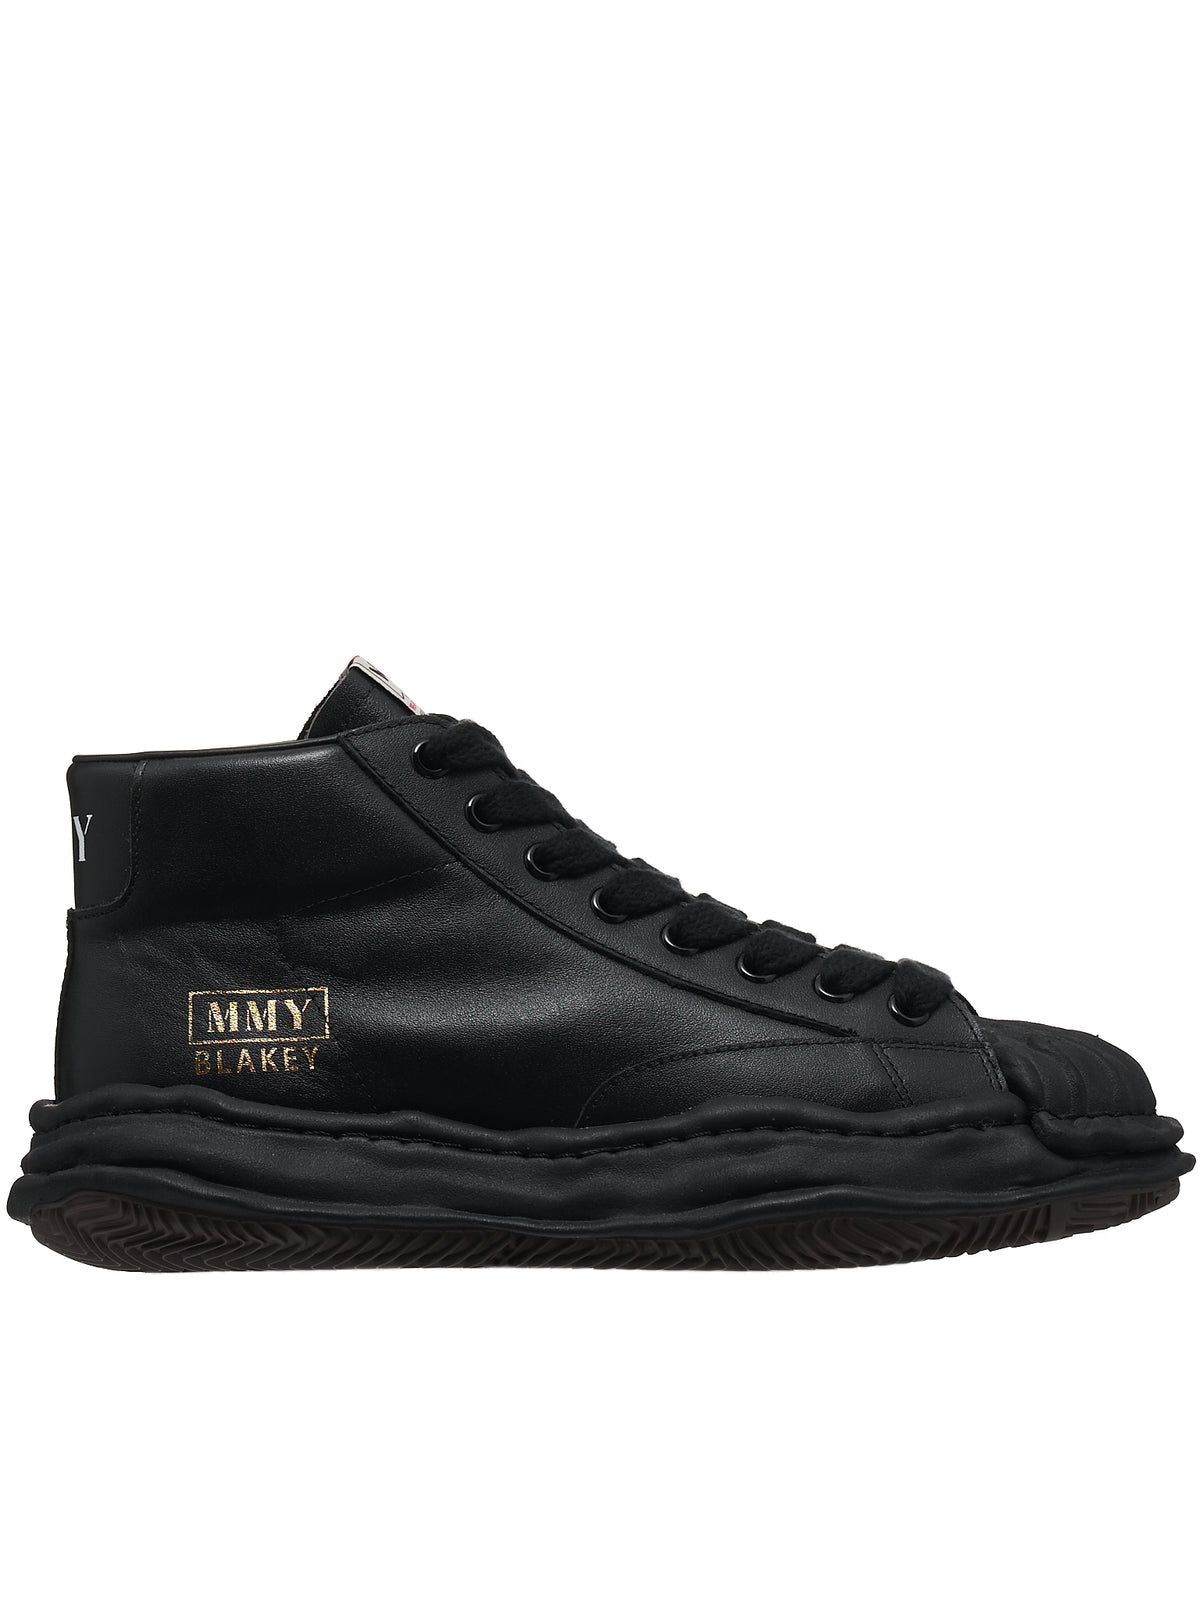 Original Sole Hi-Top Sneakers (A06FW701-BLACK)